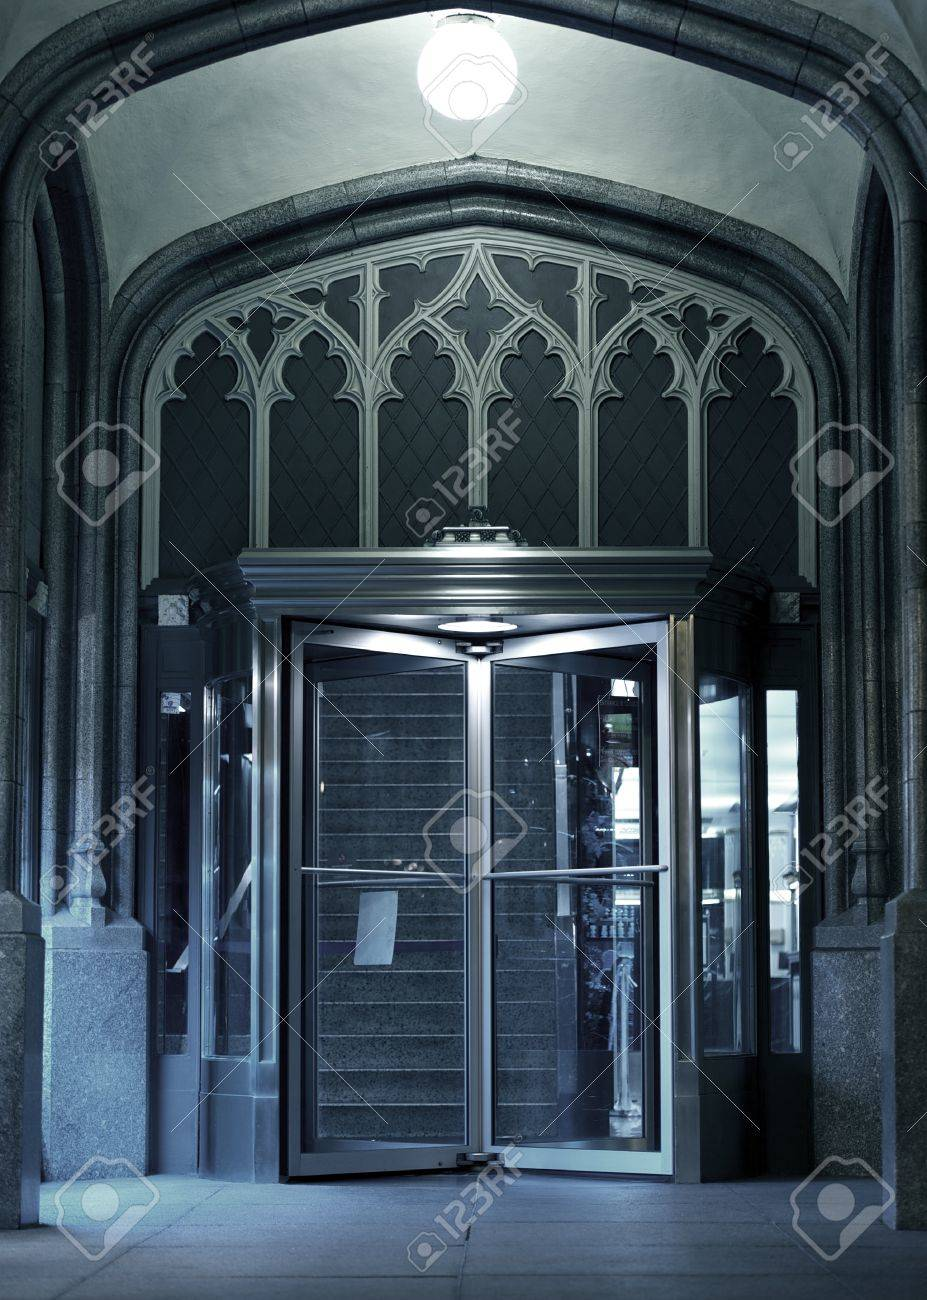 The Entrance - Chicago Architecture. Entrance with Glass Rotating Door. The Entrance - Vertical & The Entrance - Chicago Architecture. Entrance With Glass Rotating ... pezcame.com